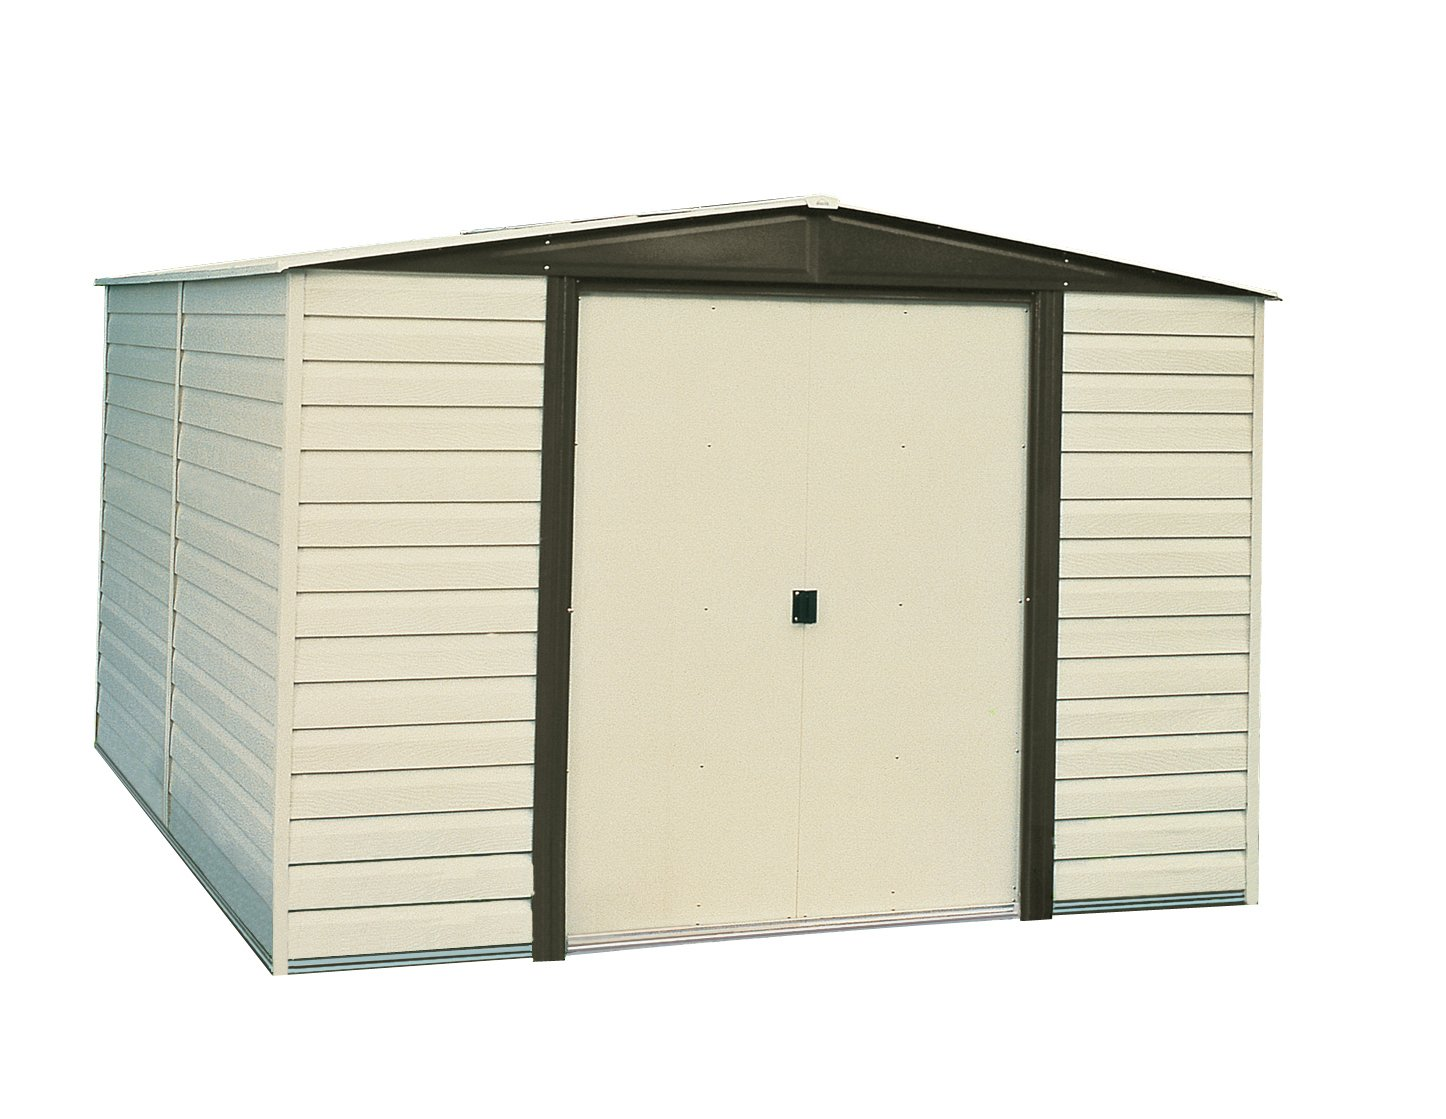 amazoncom arrow vd108 a vinyl coated dallas 10 feet by 8 feet steel storage shed sheds outdoor storage patio lawn garden